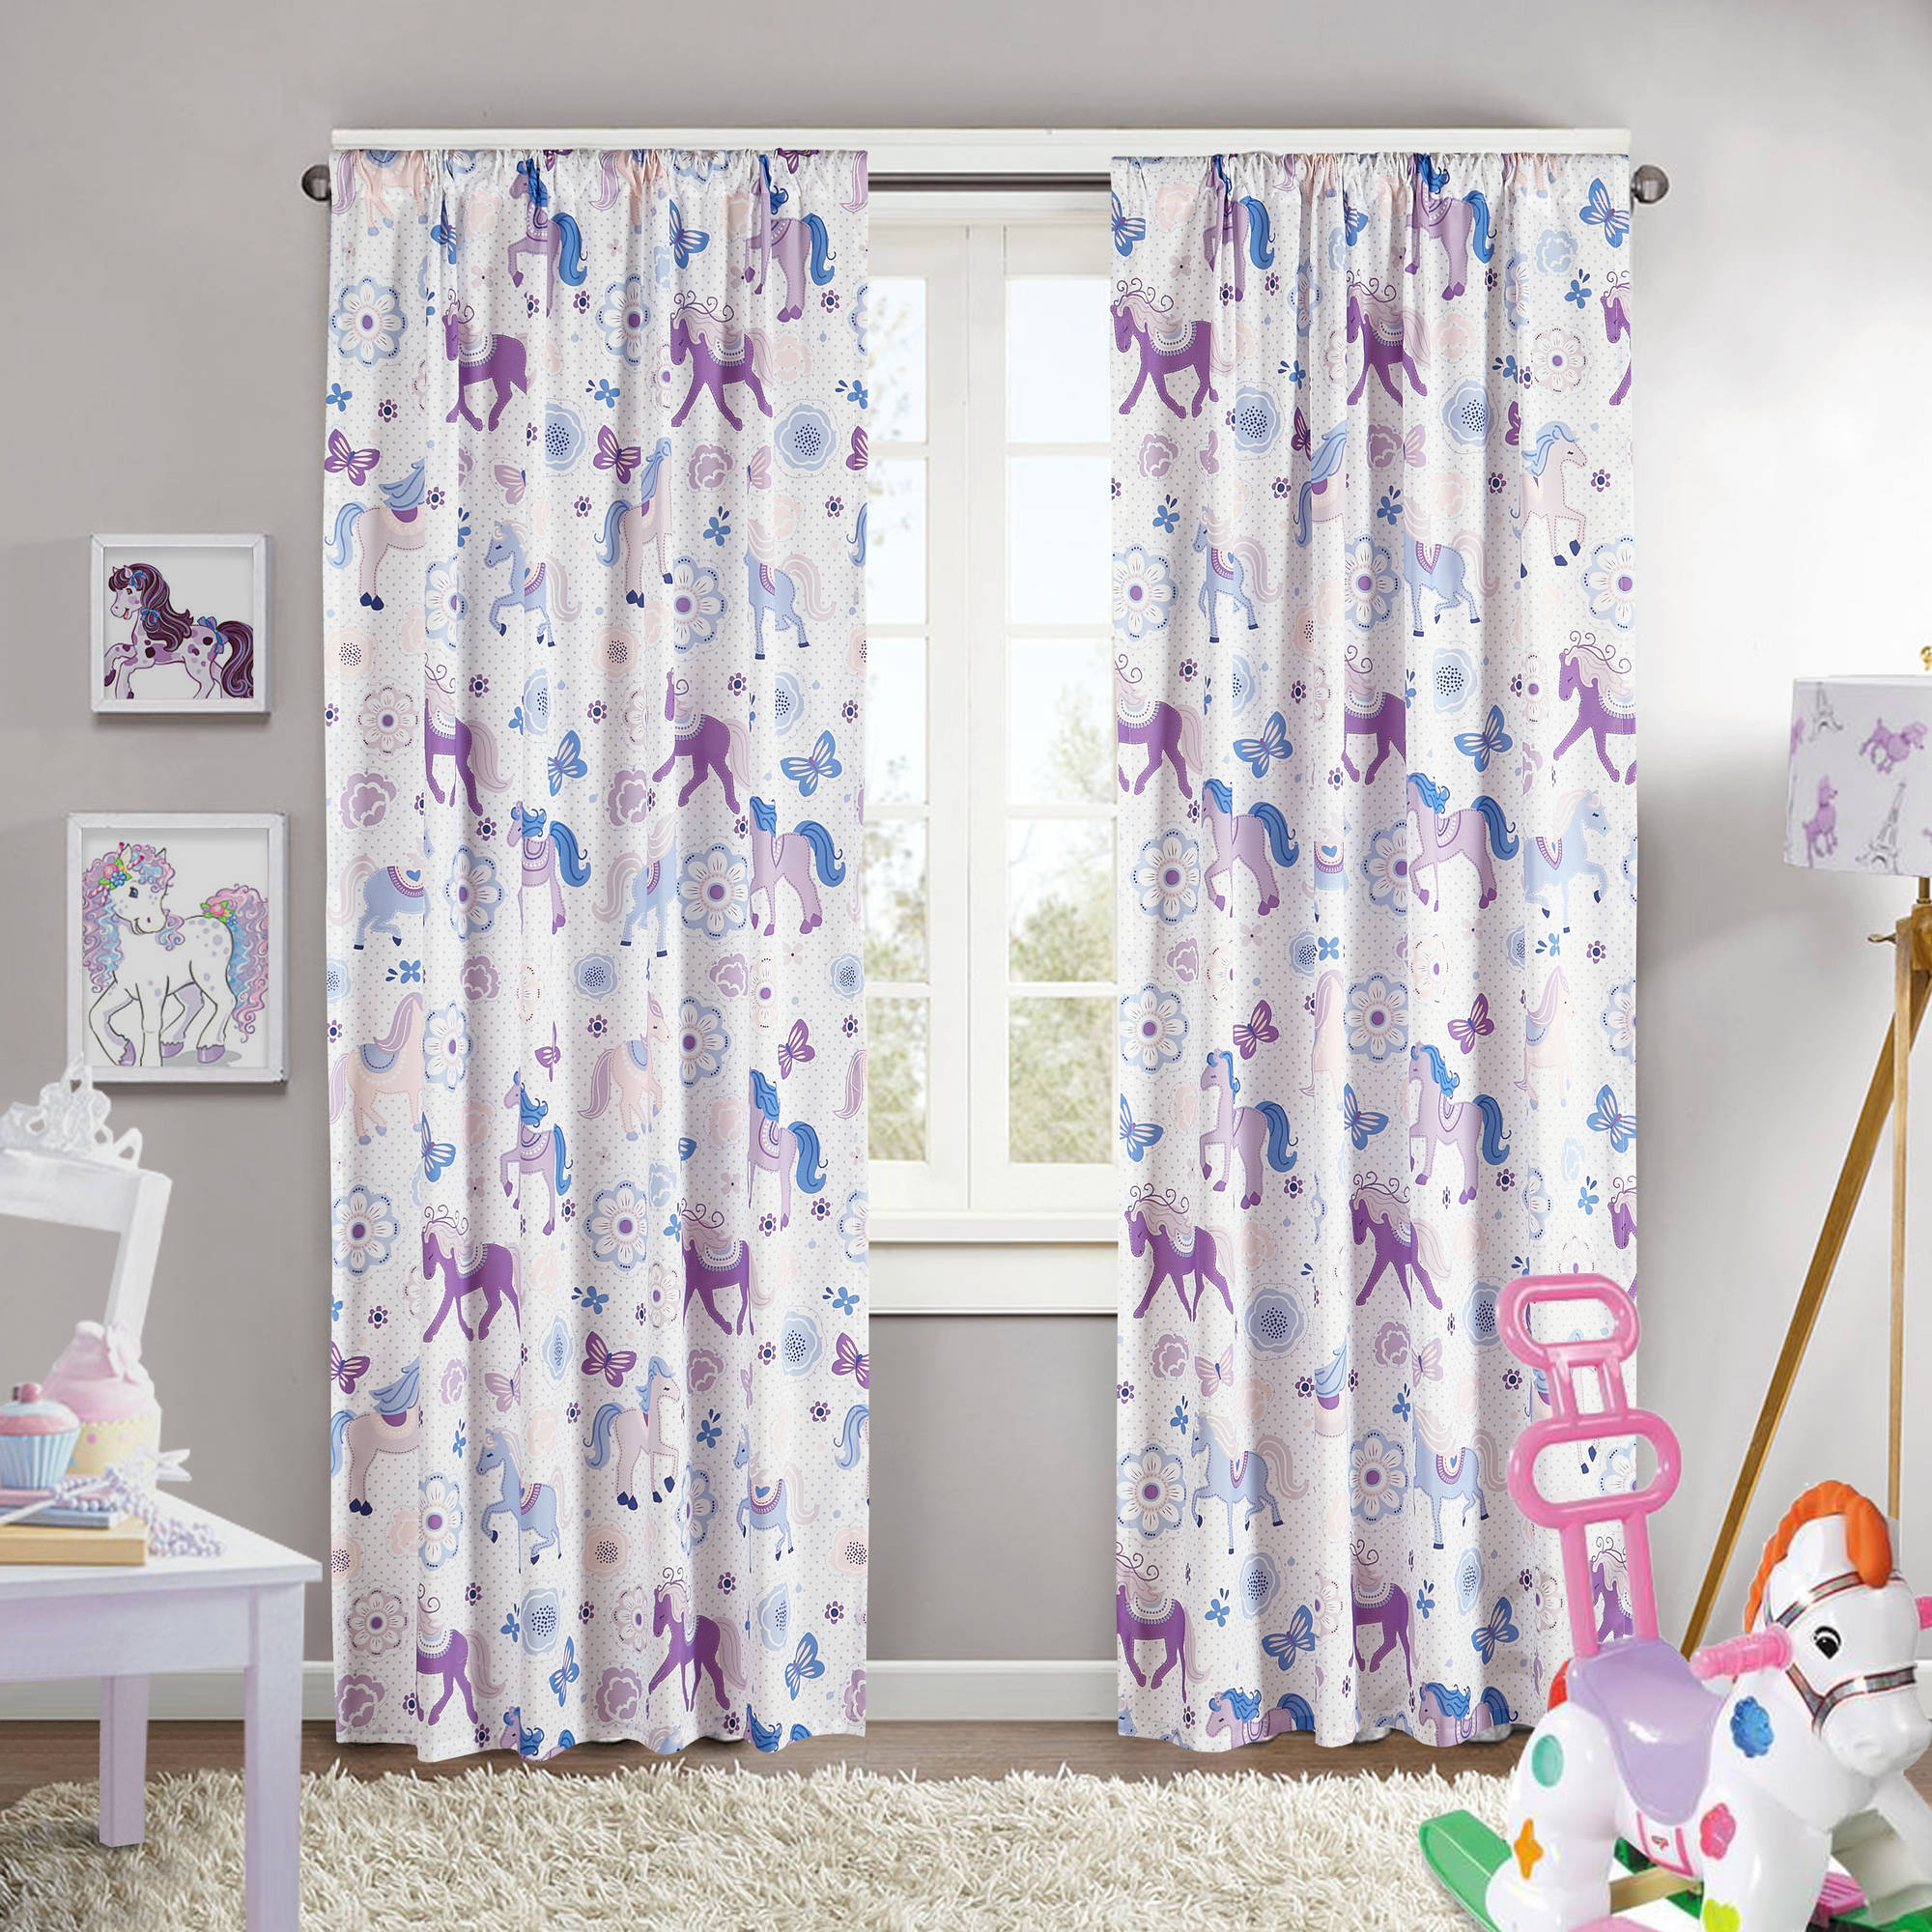 Mainstays Pretty Horses Girls Bedroom Curtain Panel